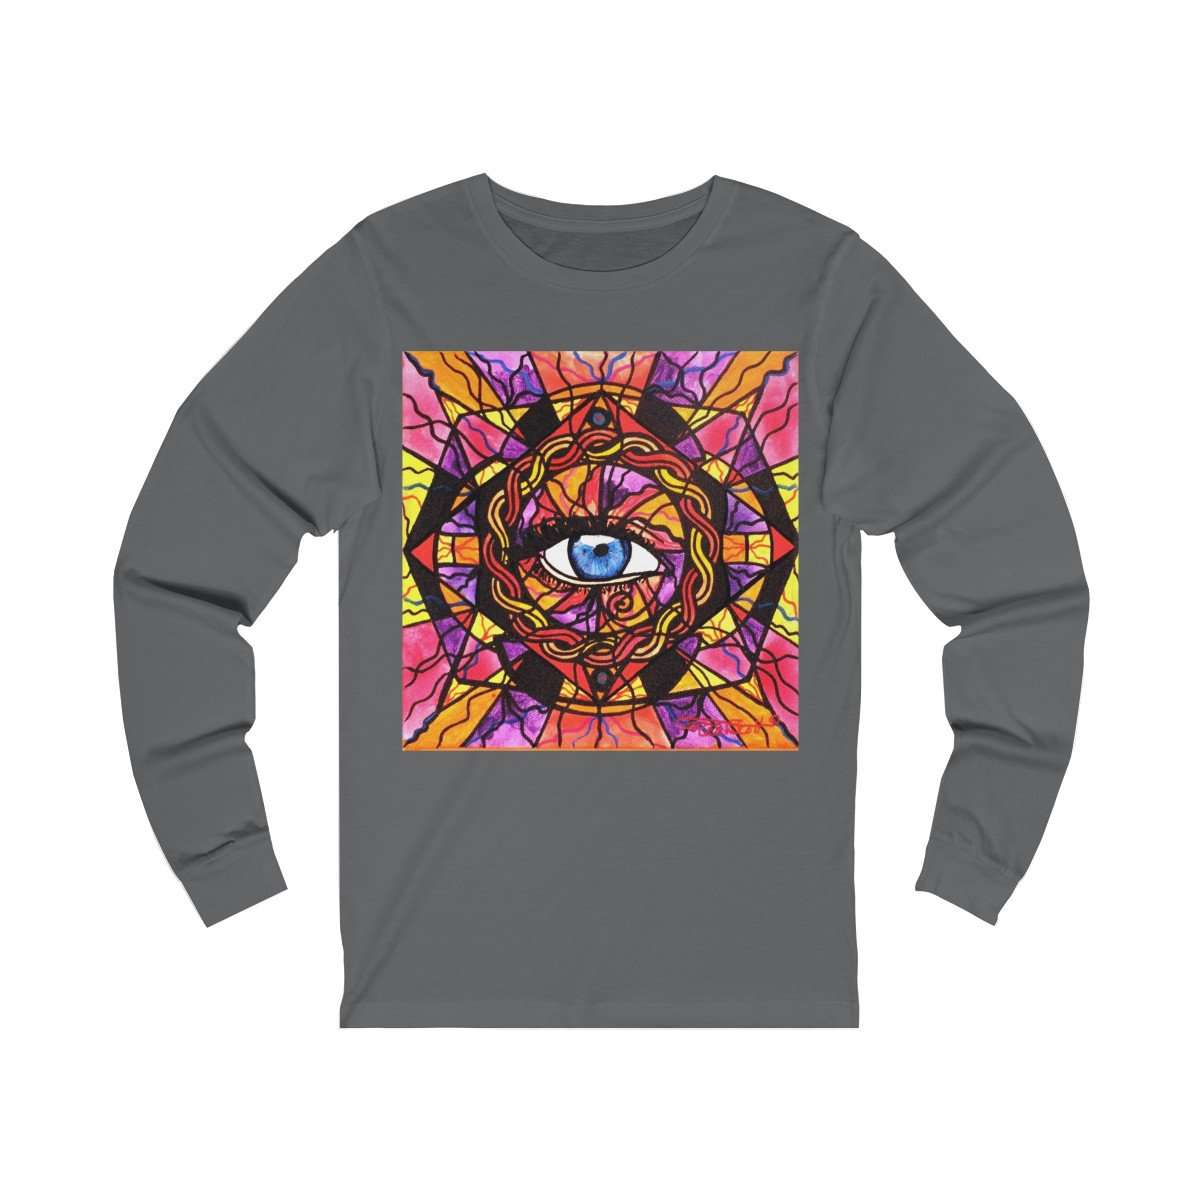 Confident Self Expression - Unisex Jersey Long Sleeve Tee